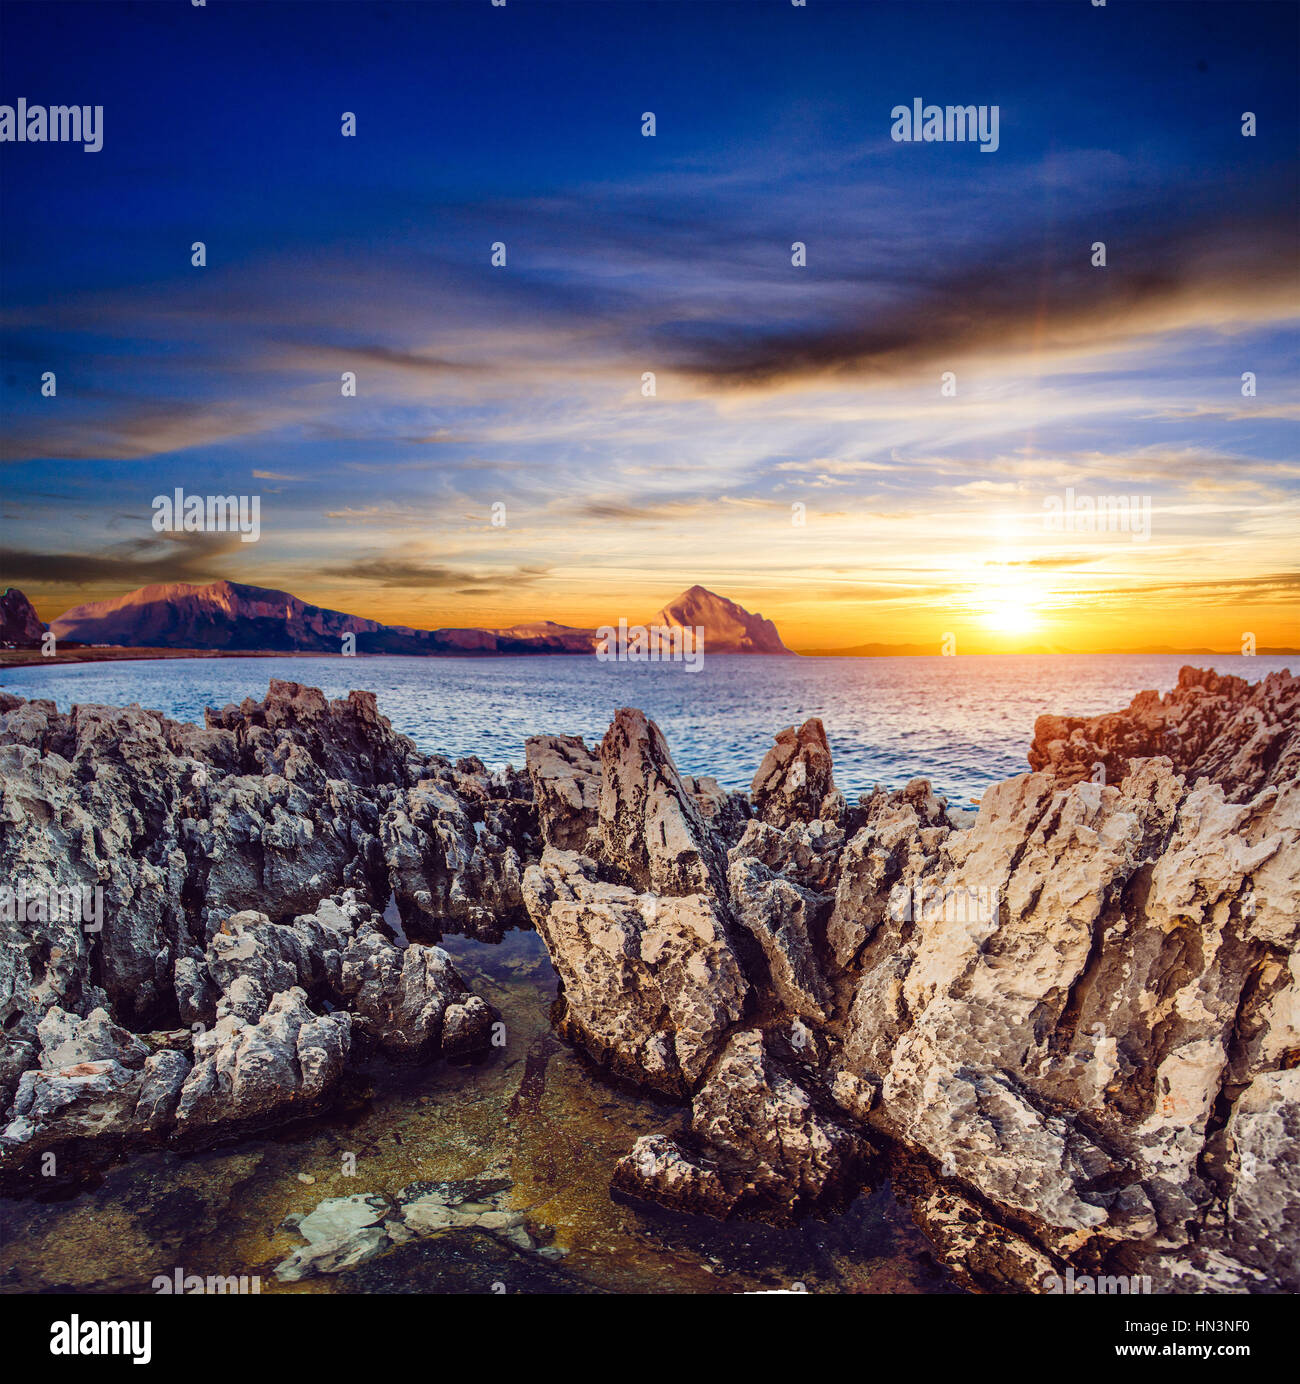 Sunset over the rocks. - Stock Image